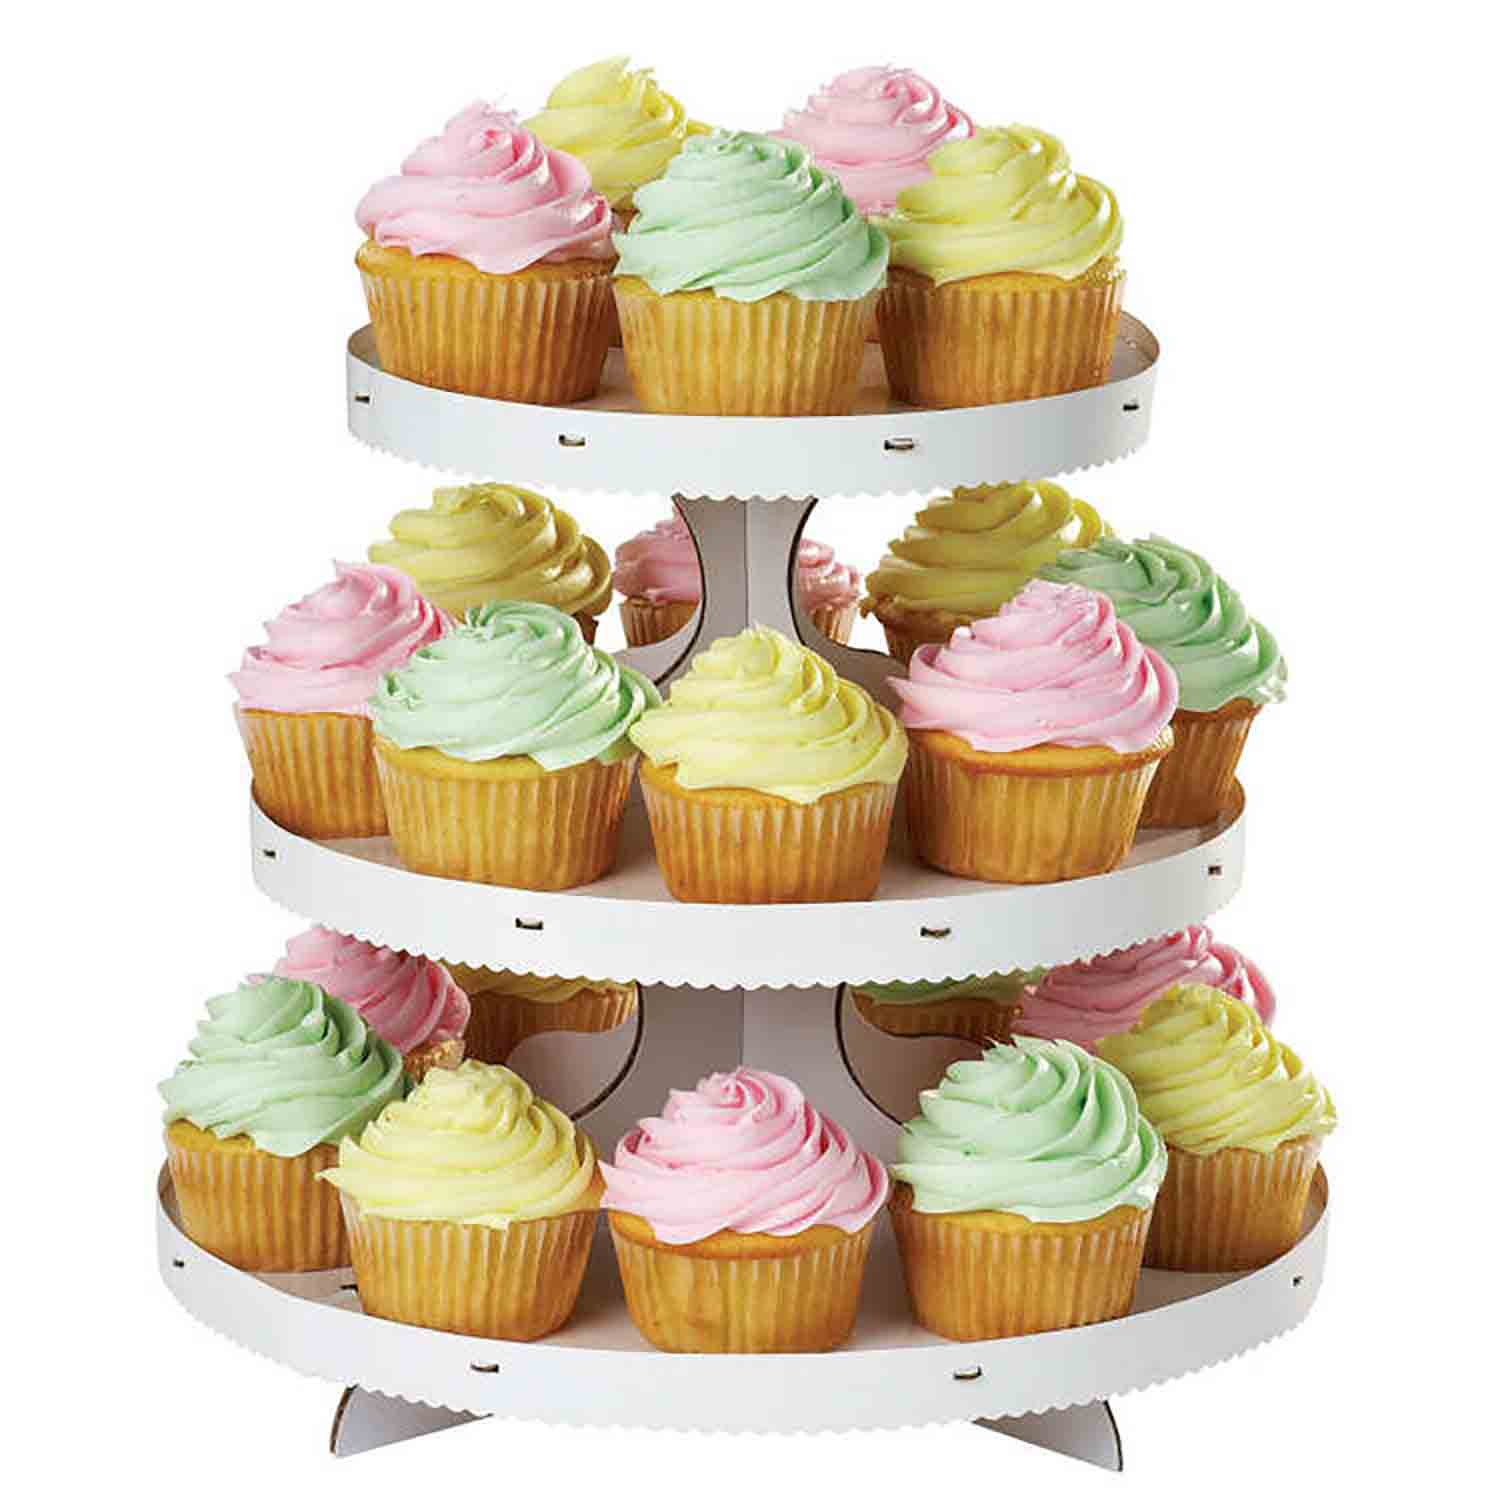 3 Tier White Cupcake Stand (Holds 24)